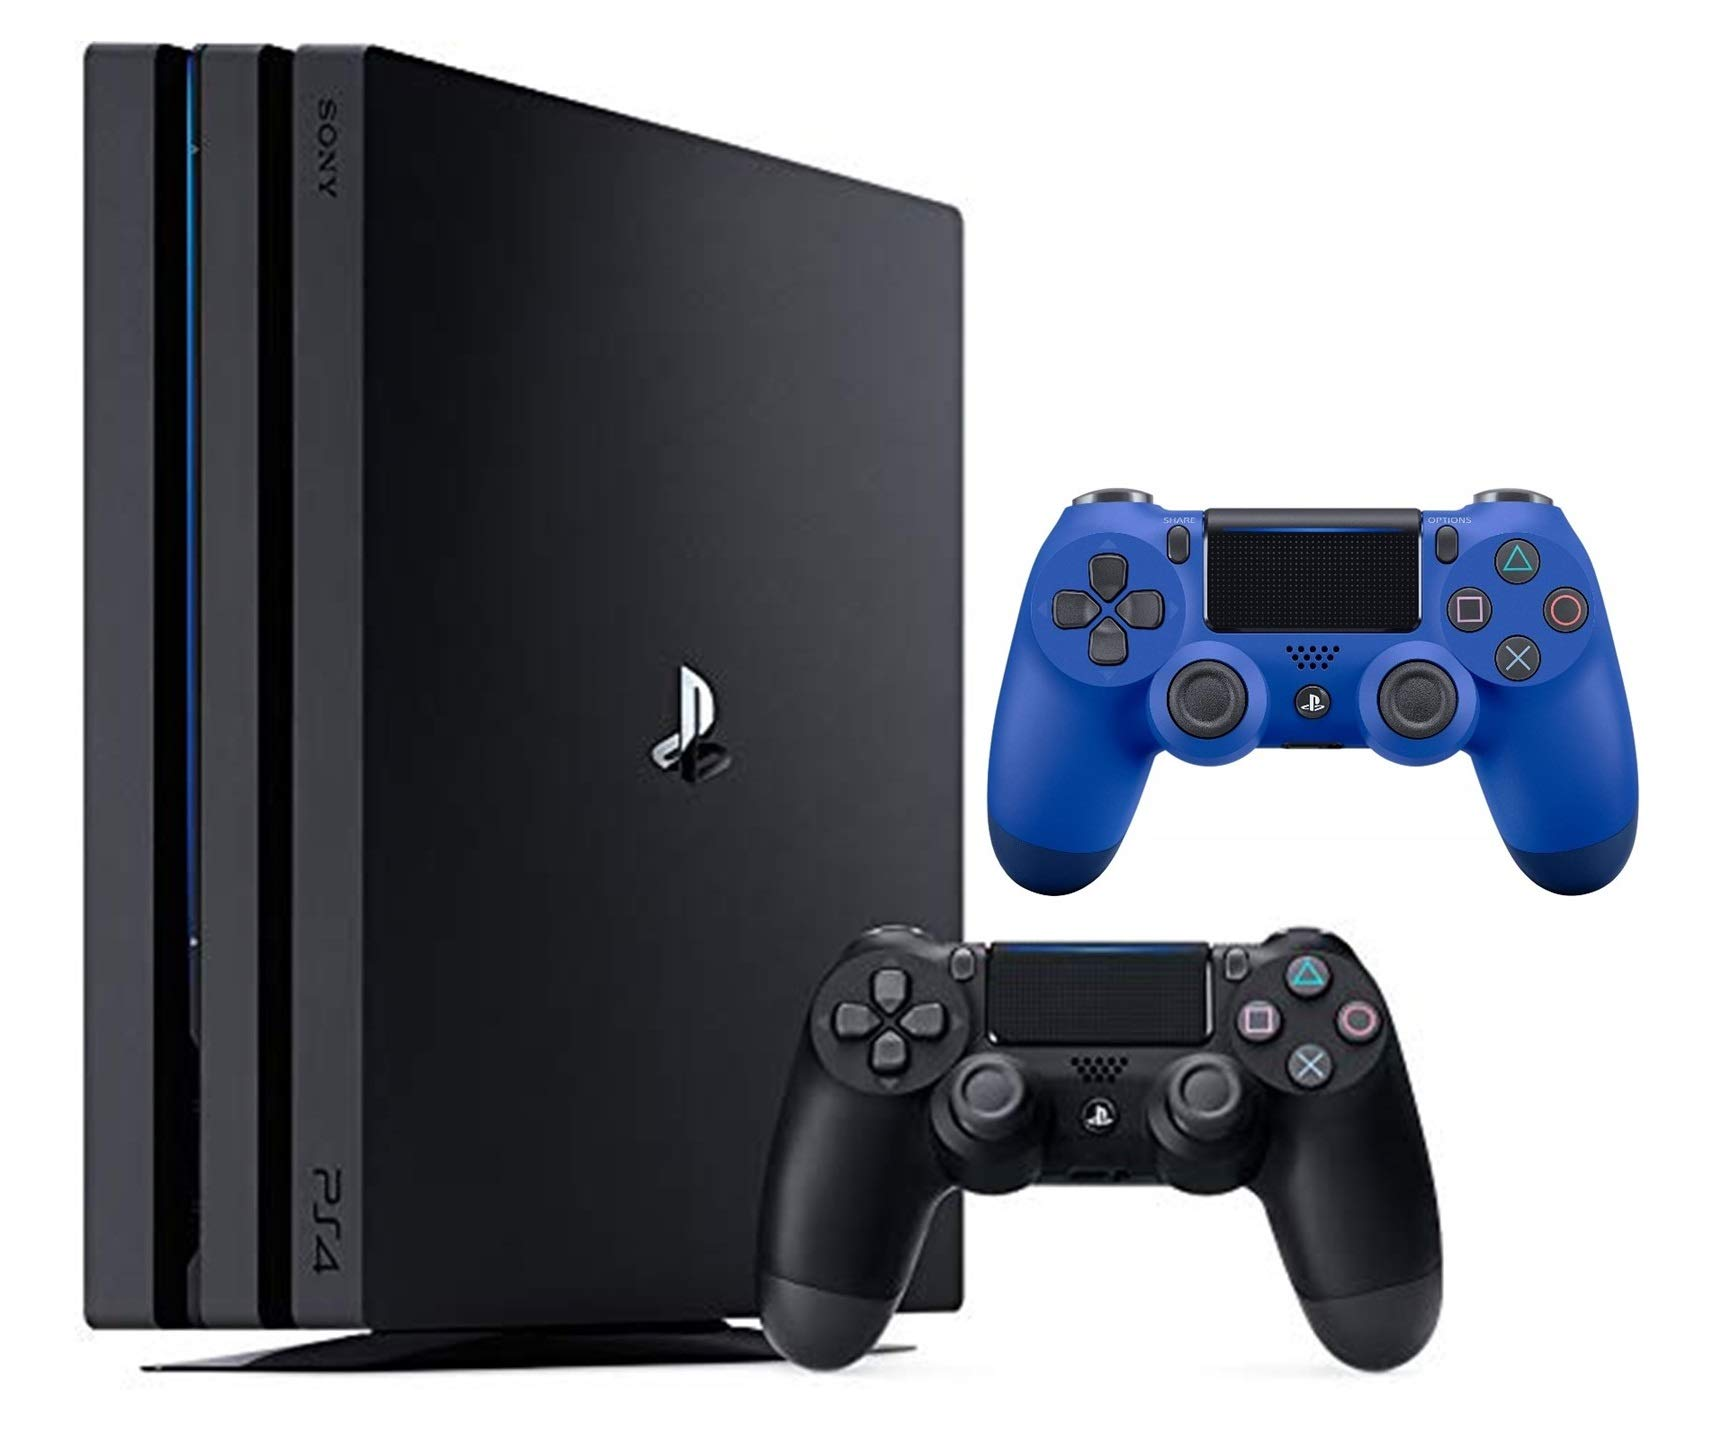 Sony PlayStation 4 Pro 1TB Two Controller Bundle: PlayStation 4 1TB Pro Console Jet Black, 2 DUALSHOCK 4 Wireless Controllers